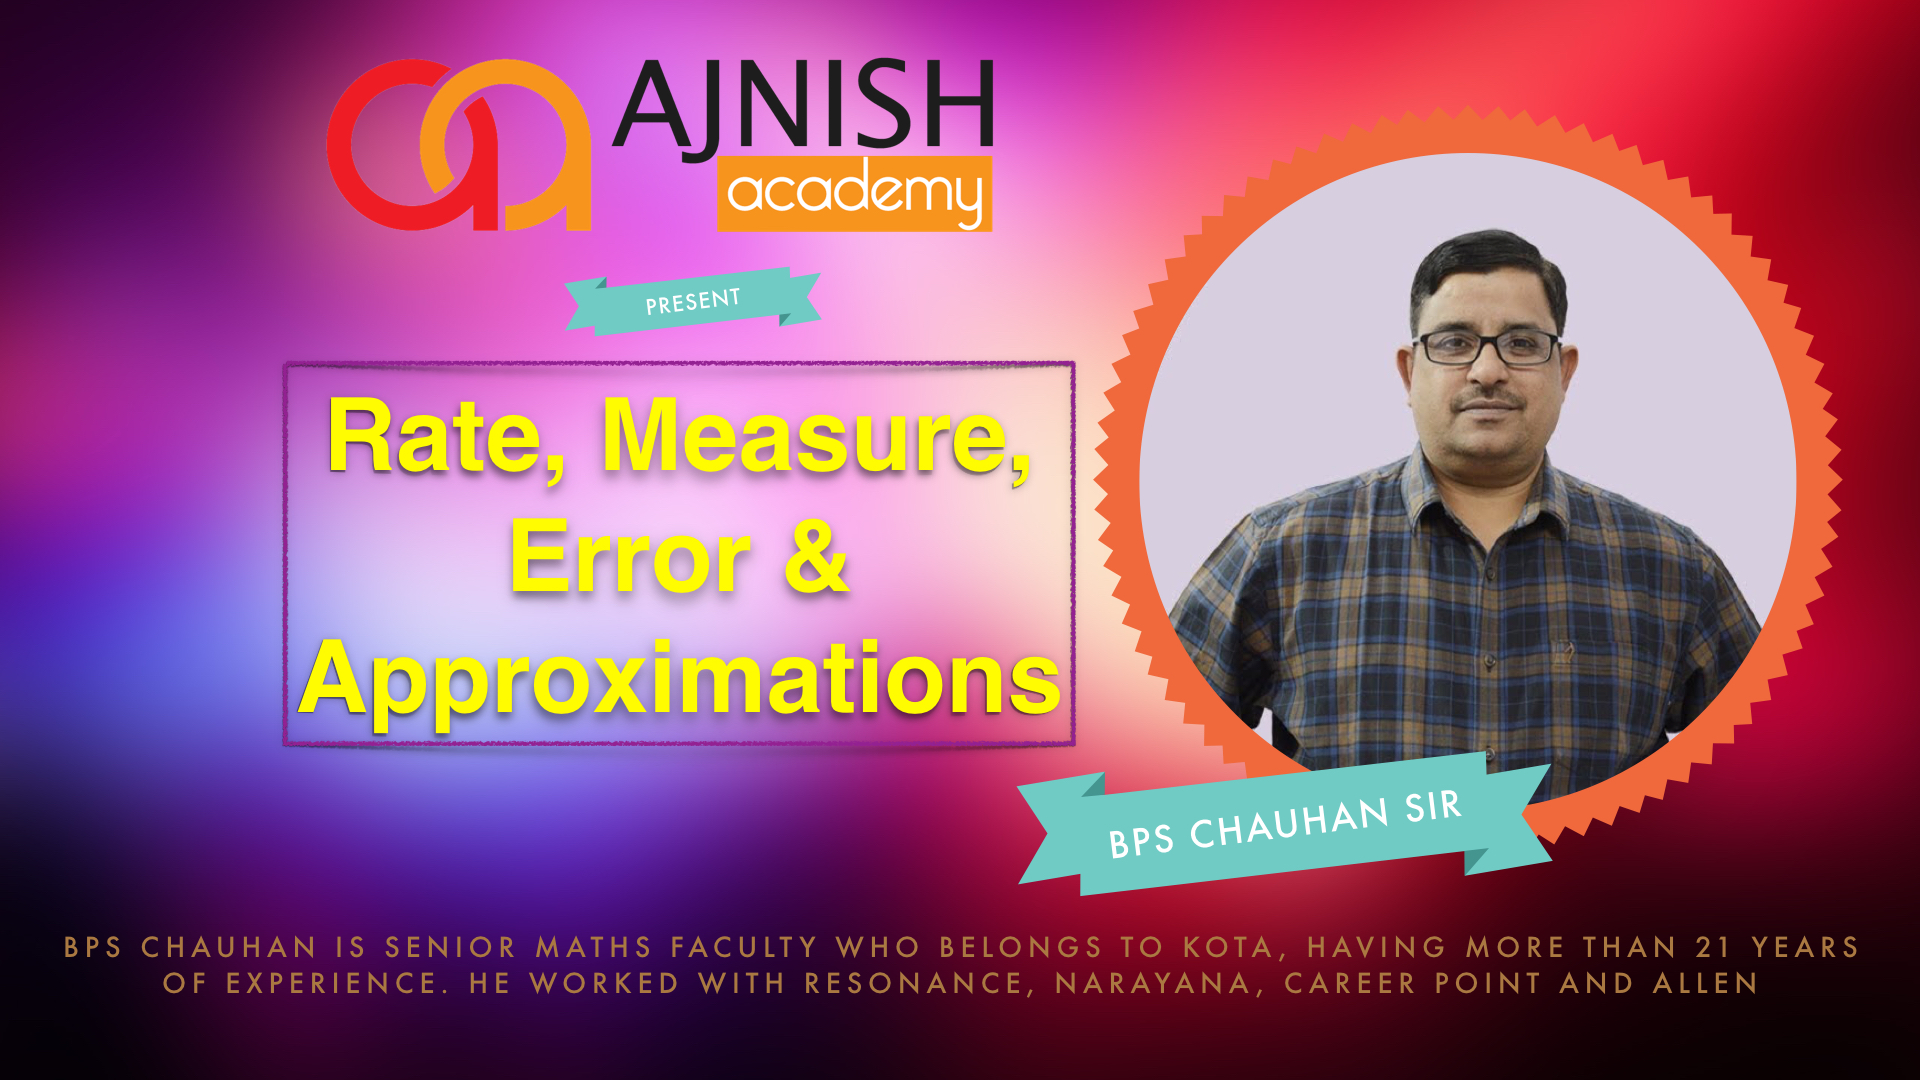 Rate, Measure, Error & Approximation